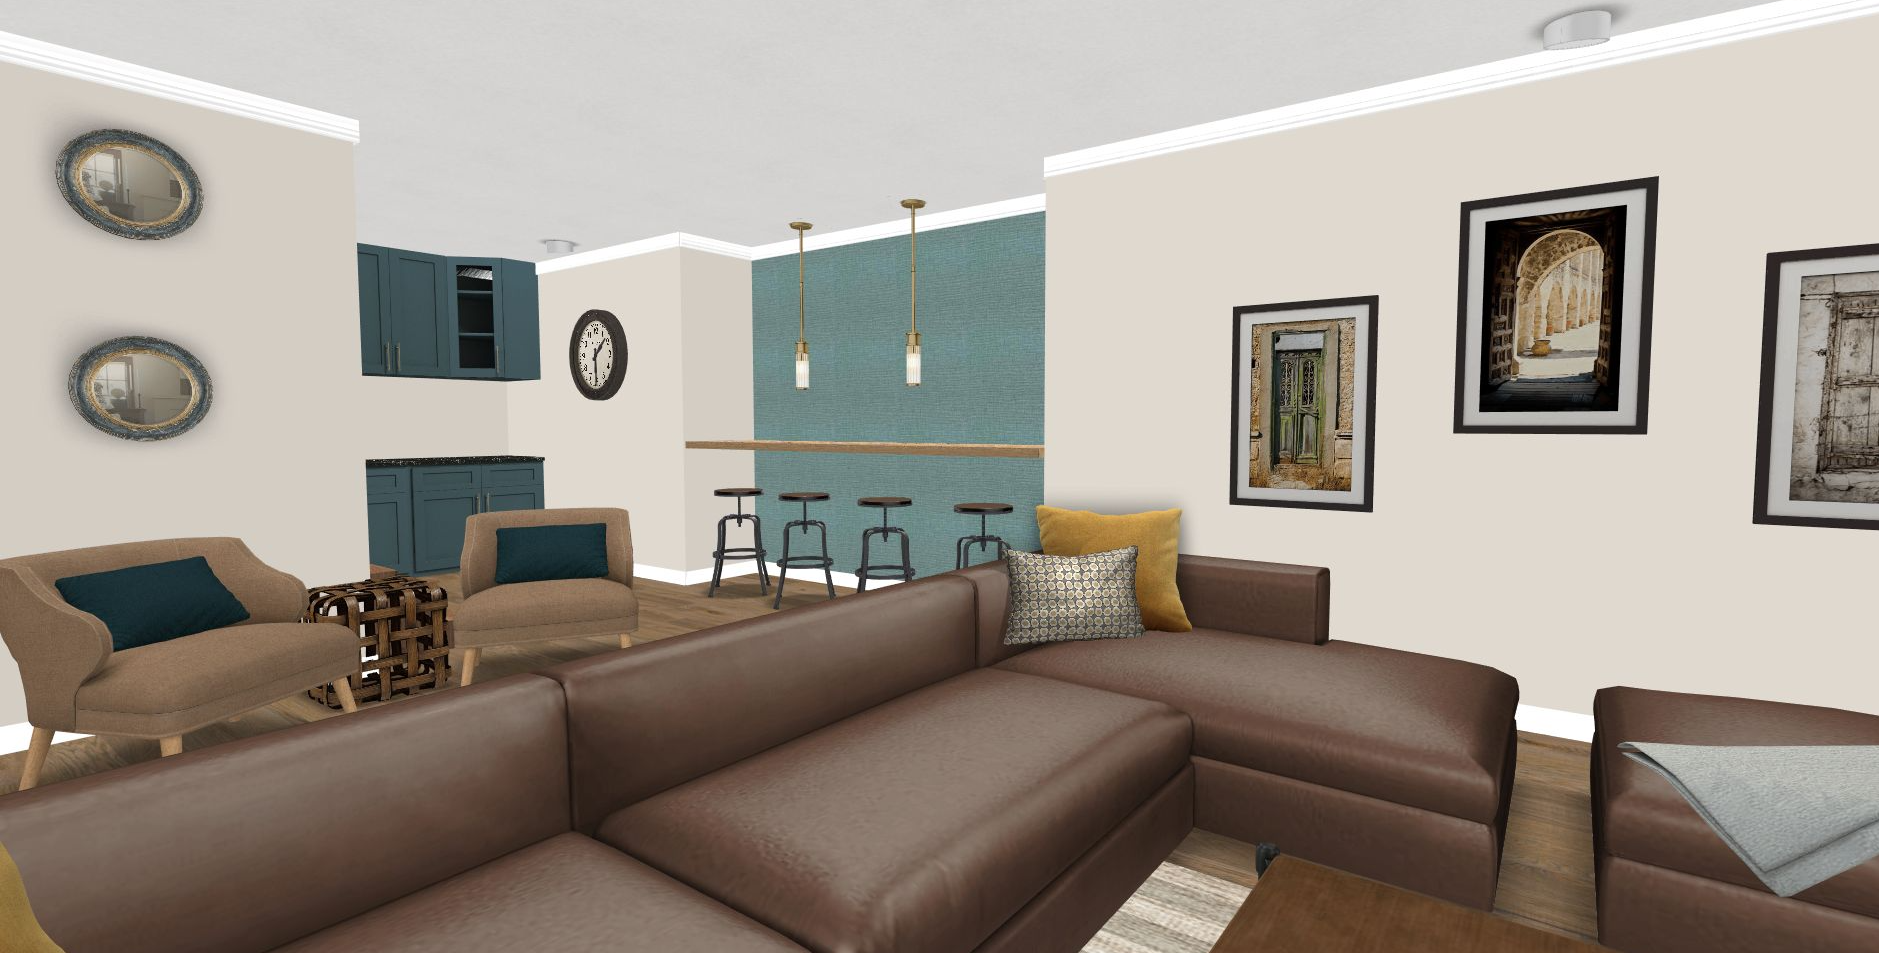 Kaoud Basement Interior Rendering - 3.png